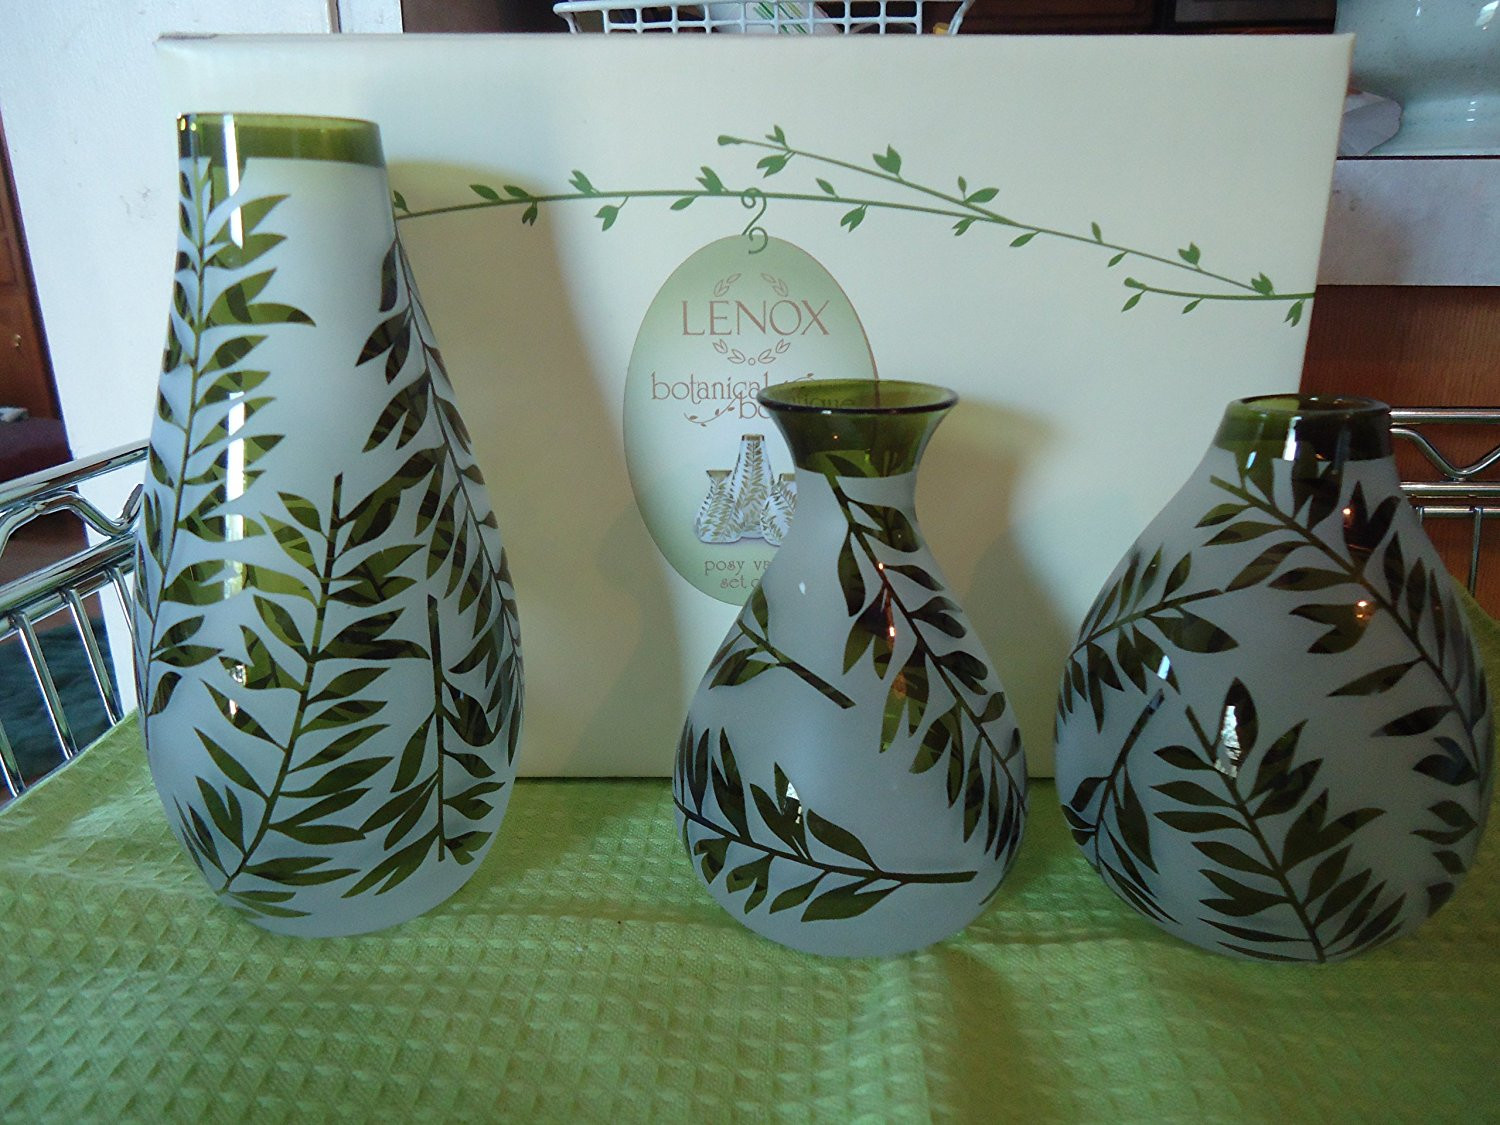 lenox bud vases set of 3 of cheap plastic bud vases cheap find plastic bud vases cheap deals on in get quotations a· lenox botanical boutique set of 3 posy vases small bud vases